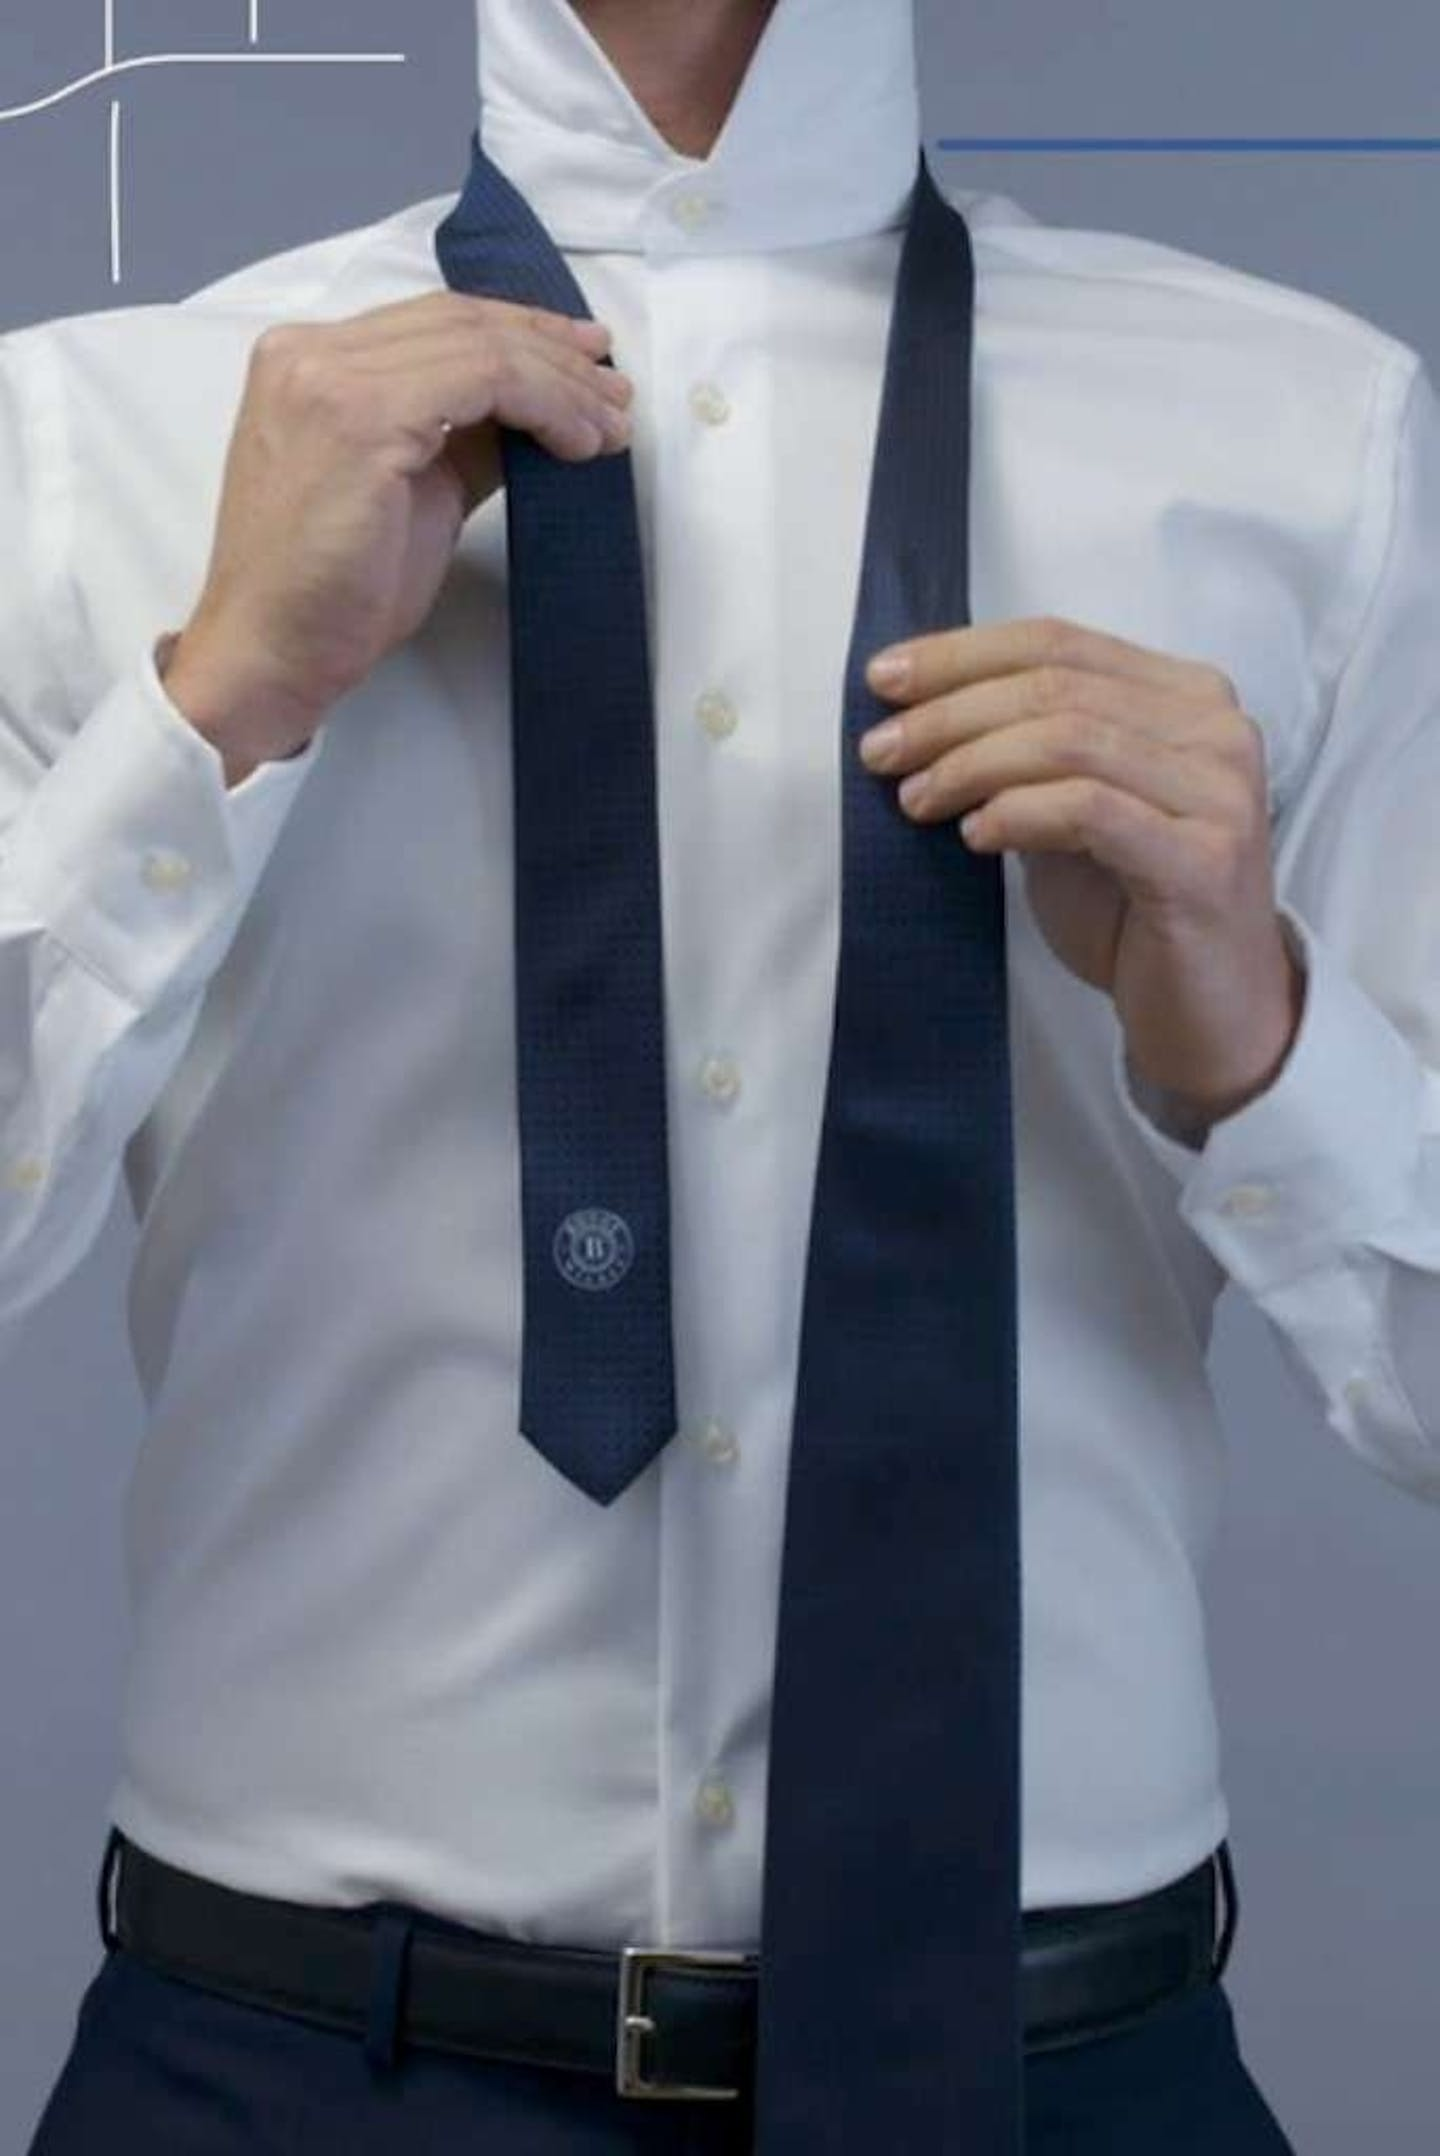 how to put on a tie boggi milano